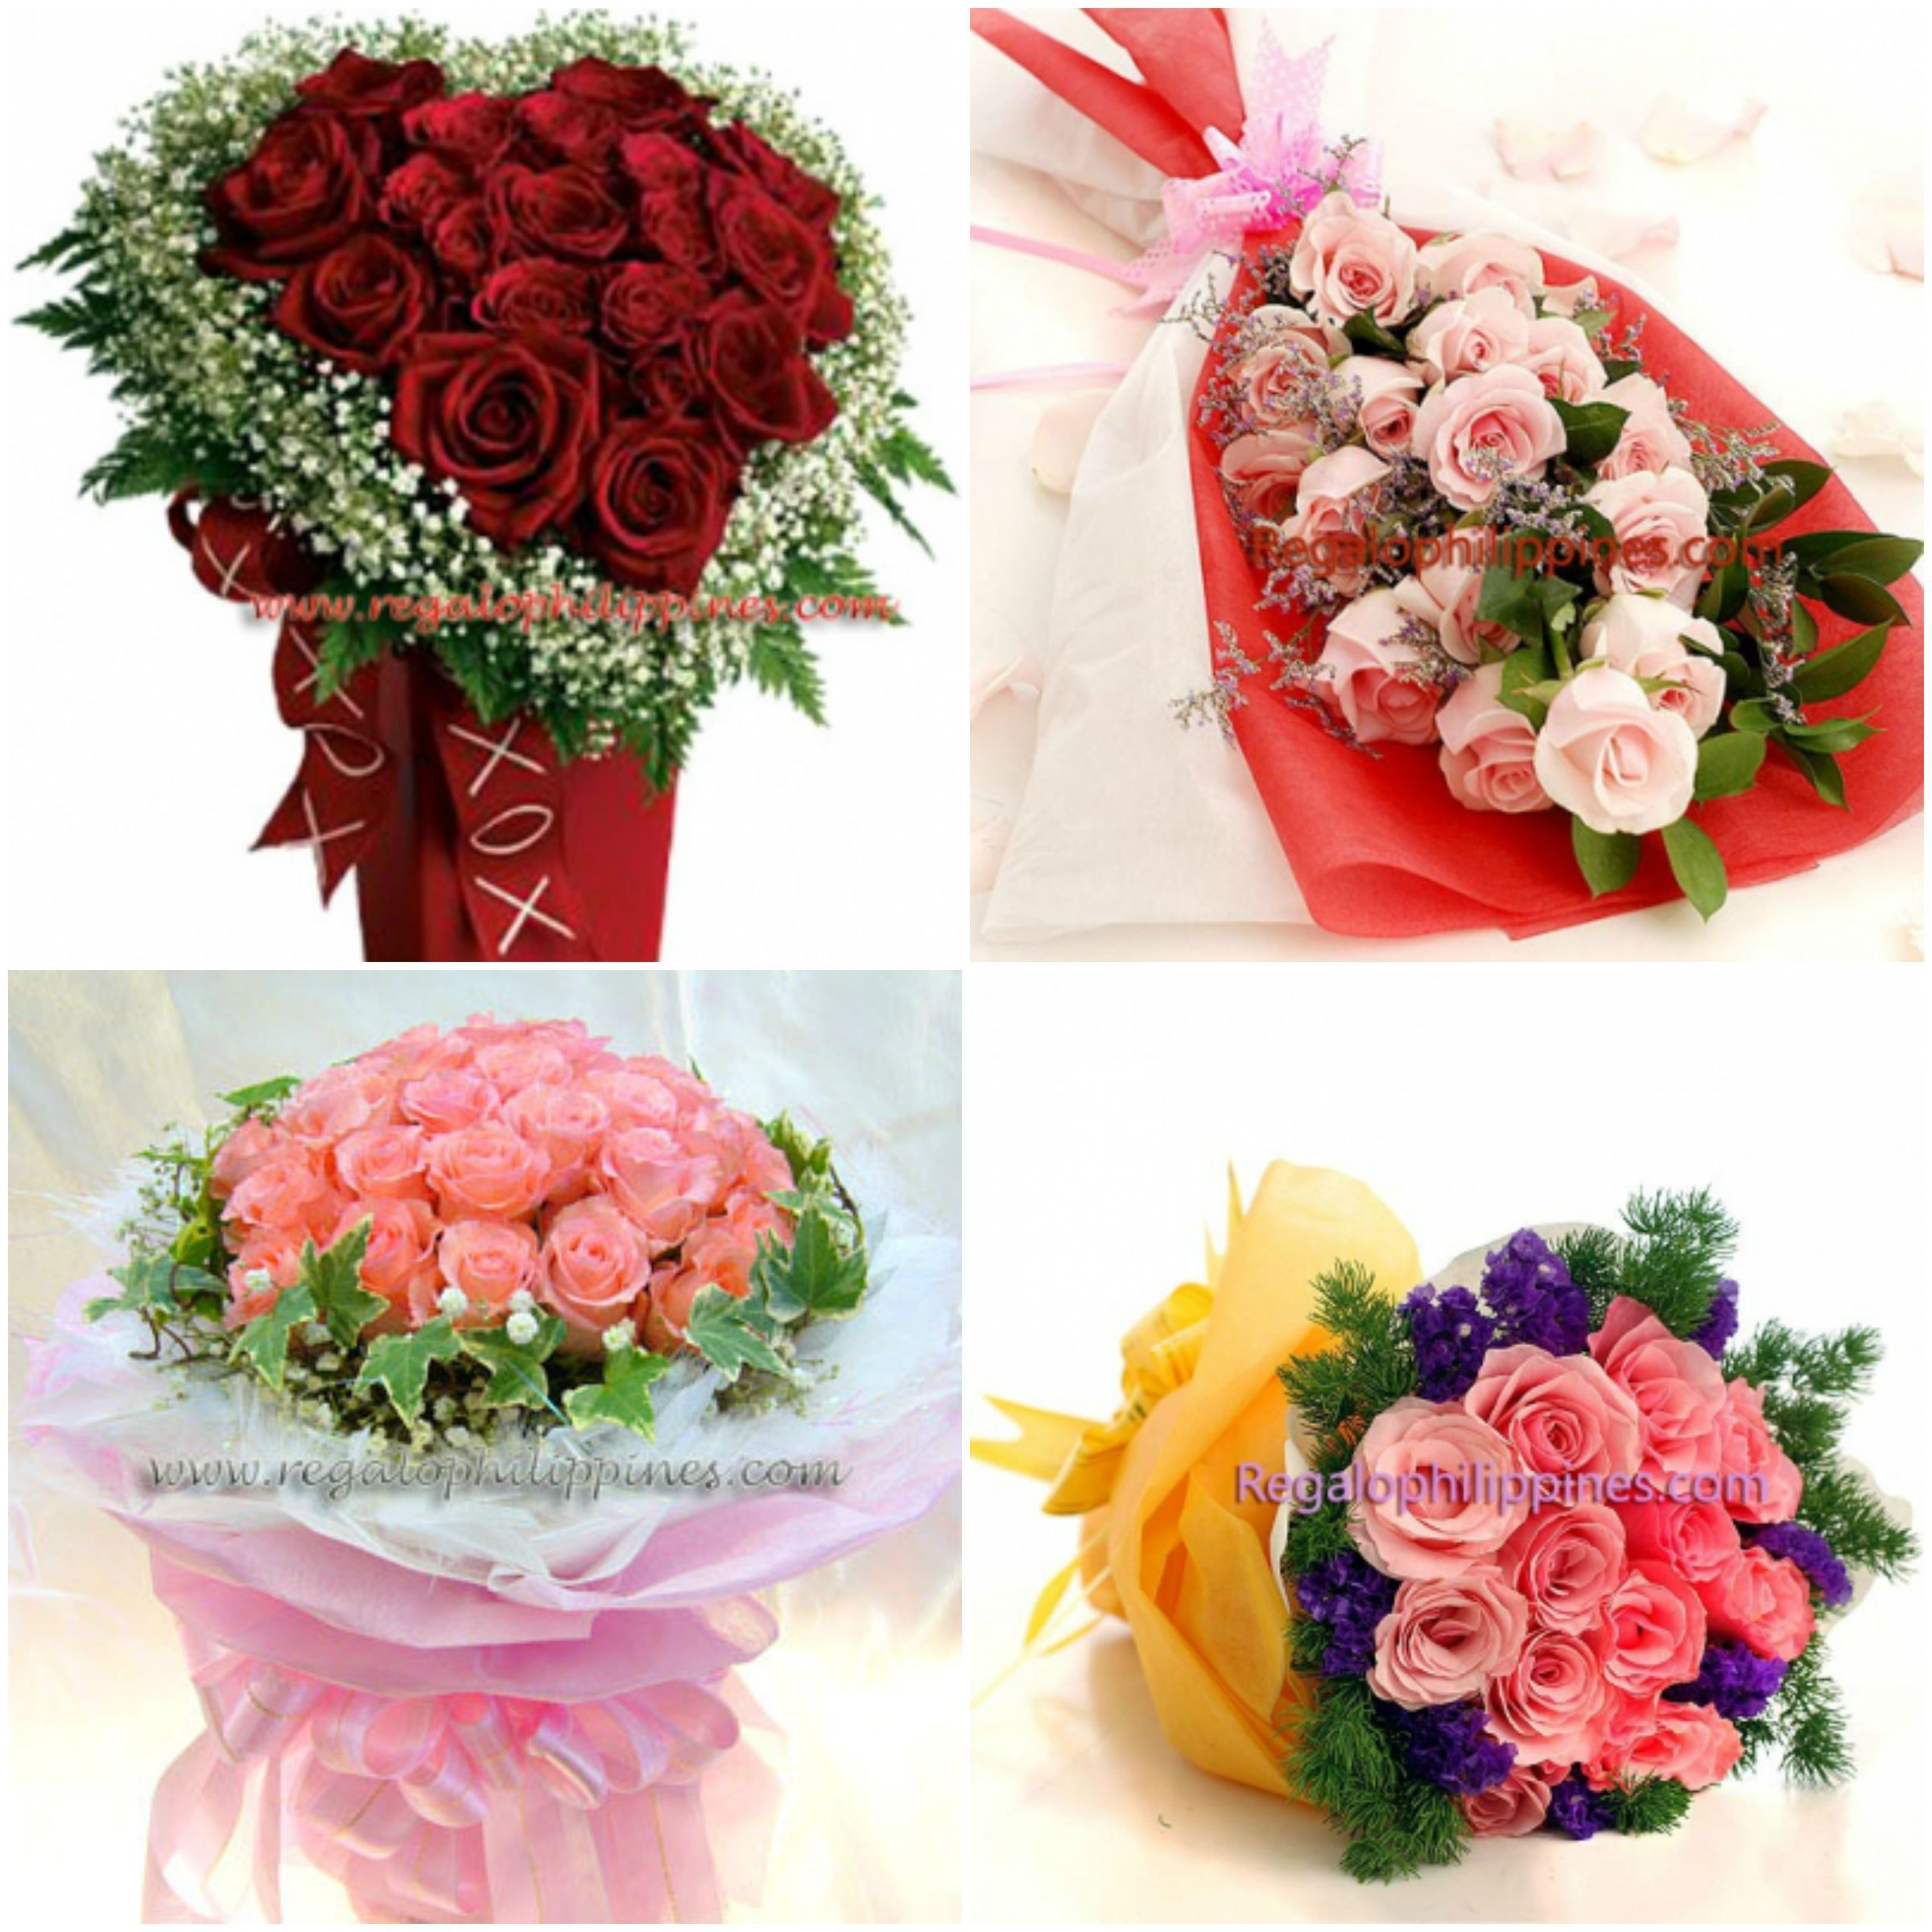 Pin by diane adenwala on arrangements pinterest flowers gifts send one of this beautiful flower bouquet to your girlfriend here in the philippines along with izmirmasajfo